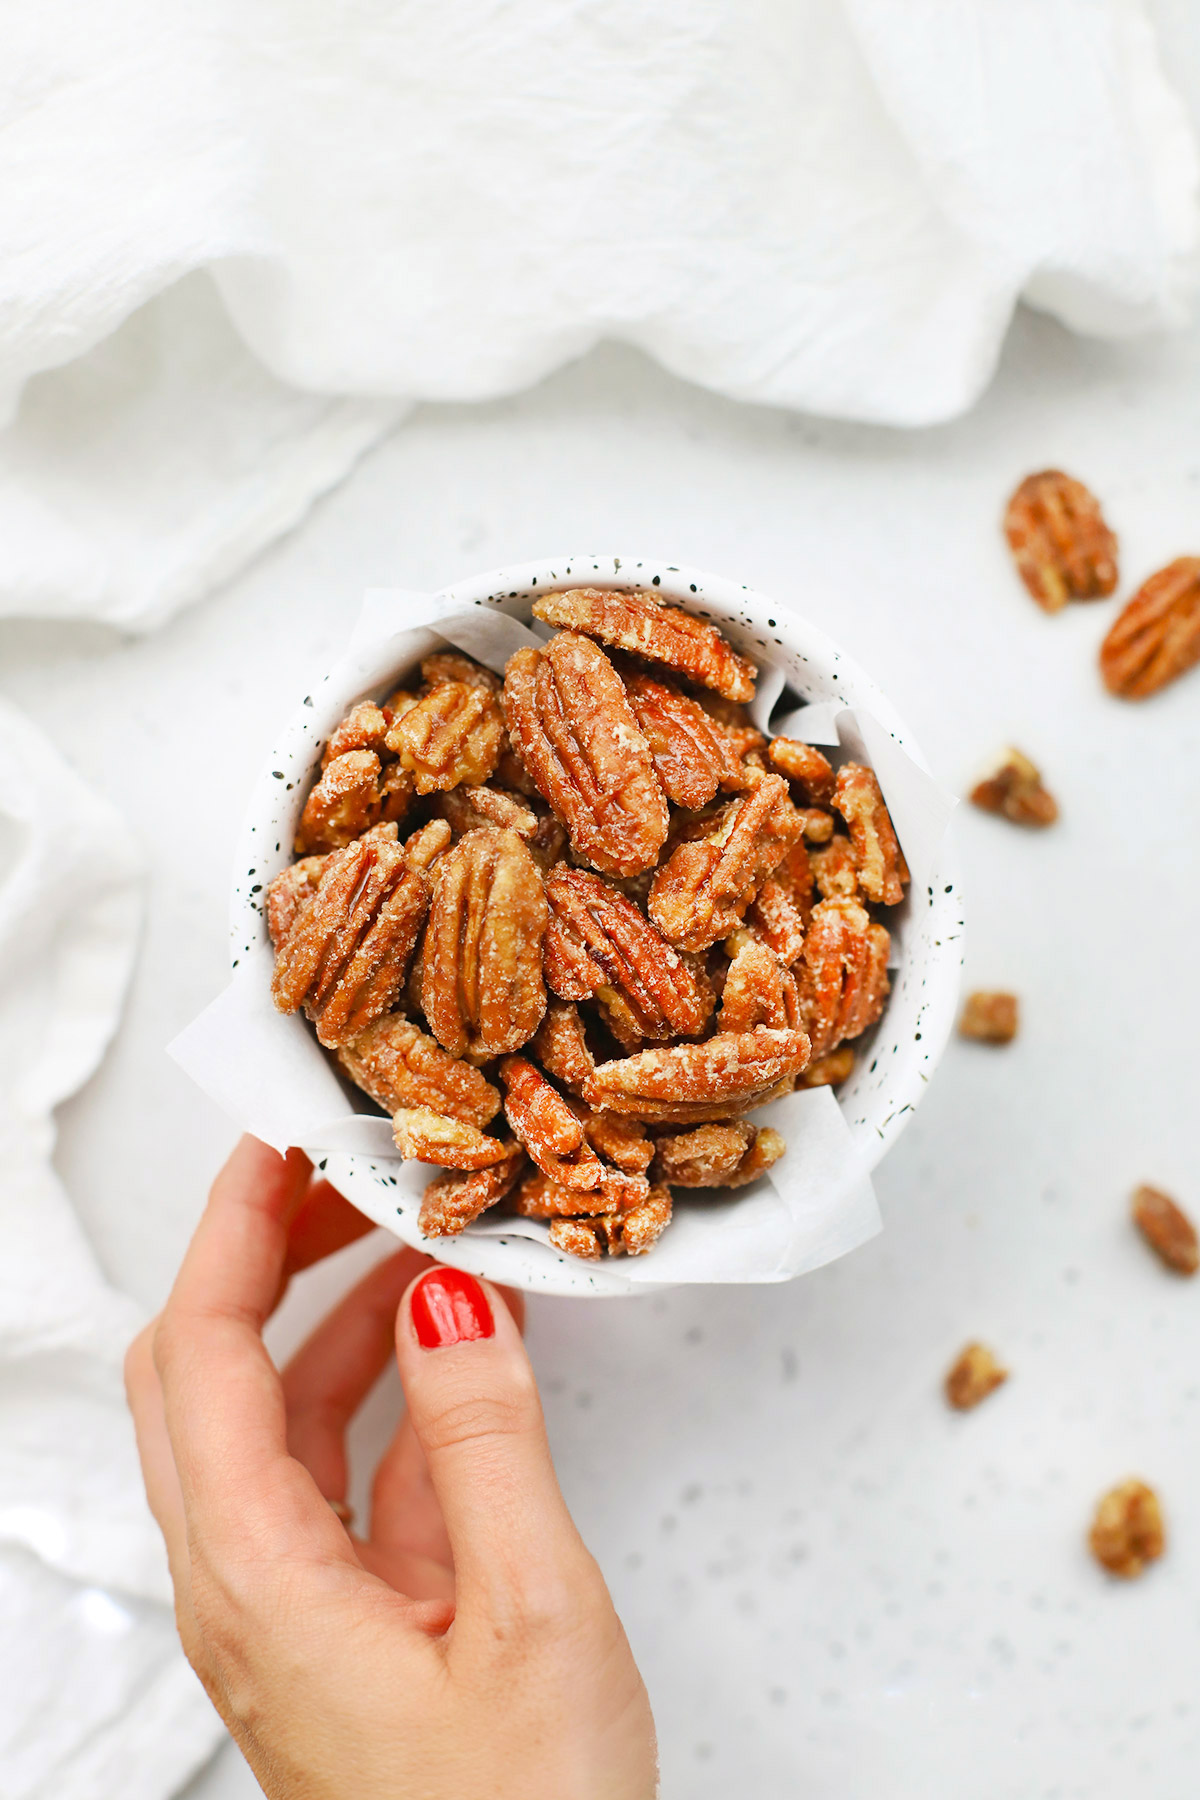 Hand setting down a speckled bowl of naturally sweetened maple candied pecans on a white background